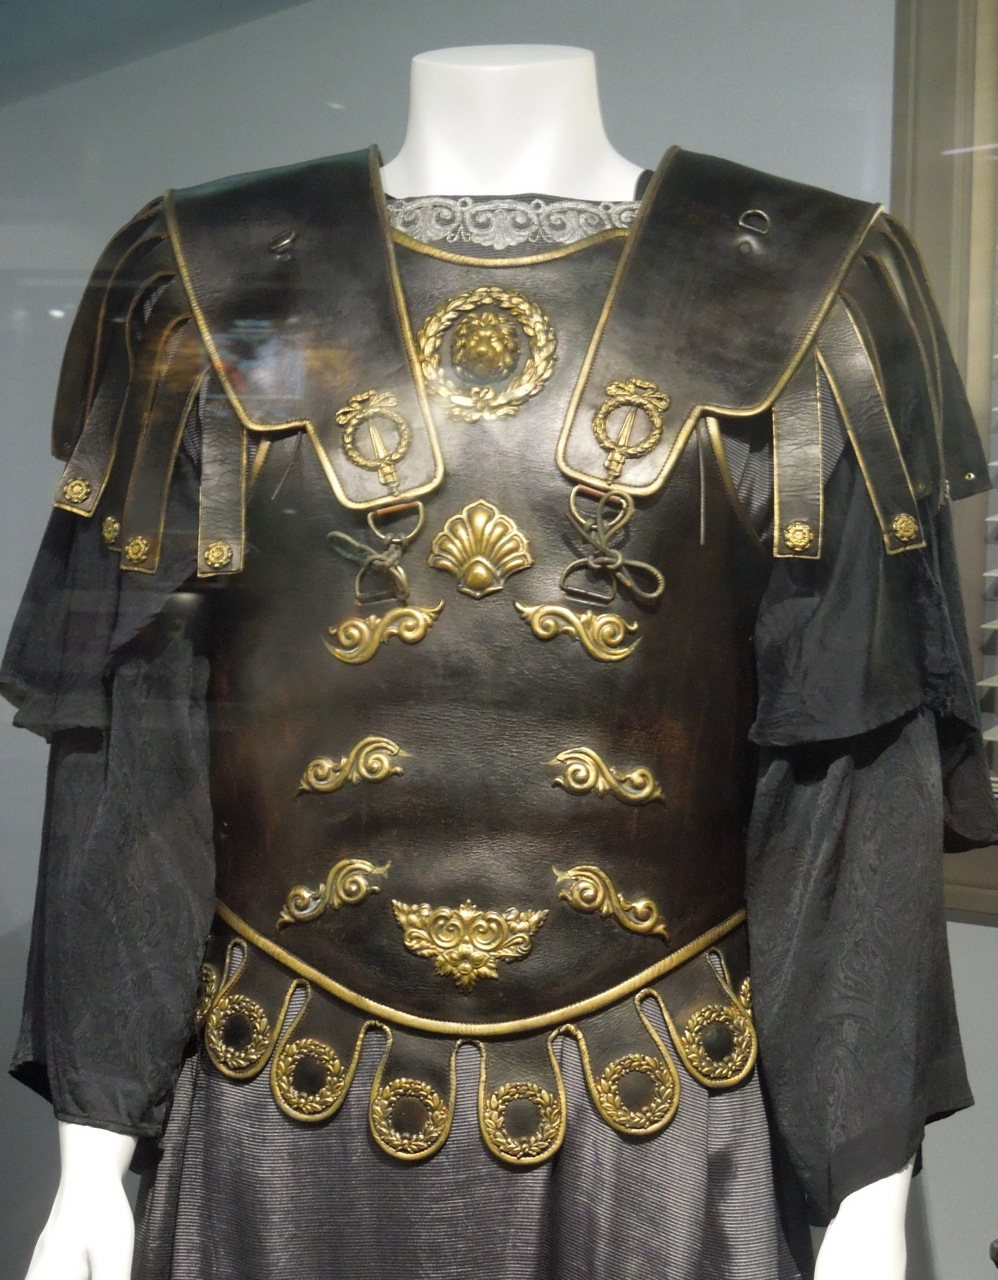 Commodus costume and throne from Gladiator on display ...